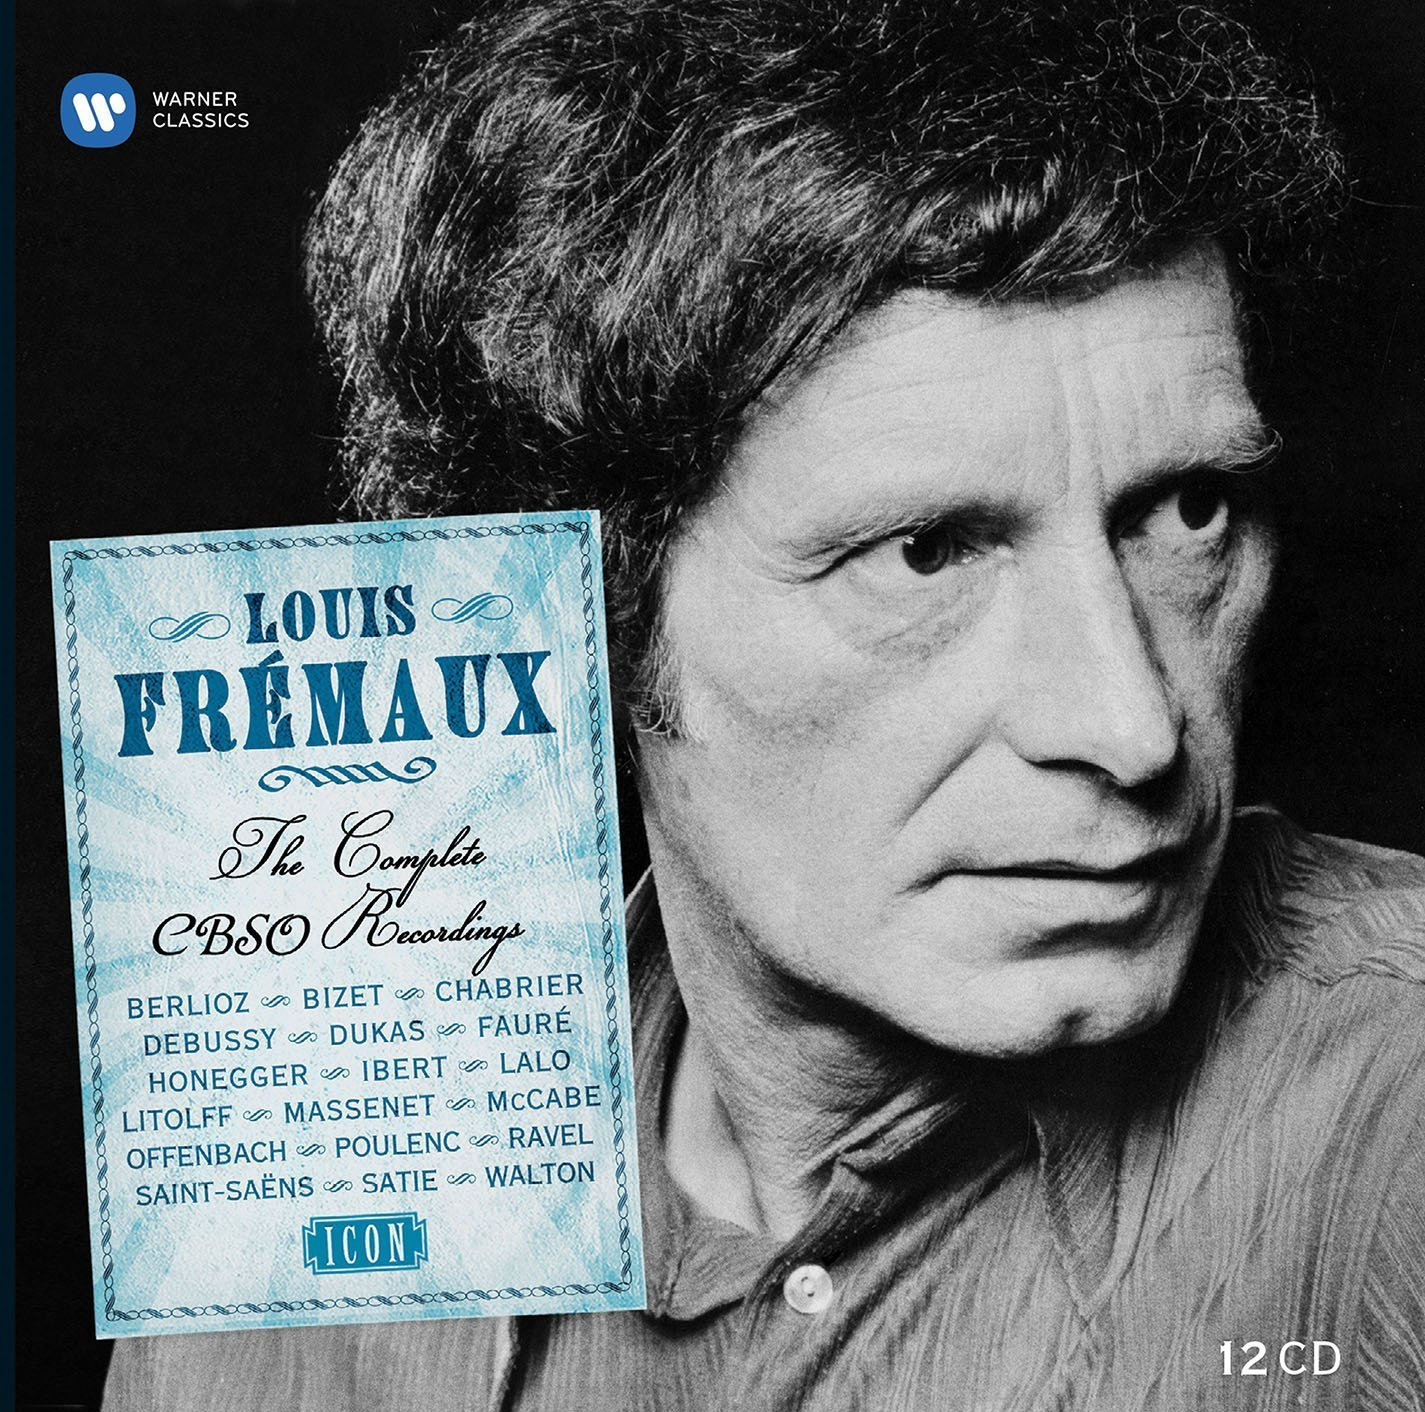 Fremaux and the CBSO